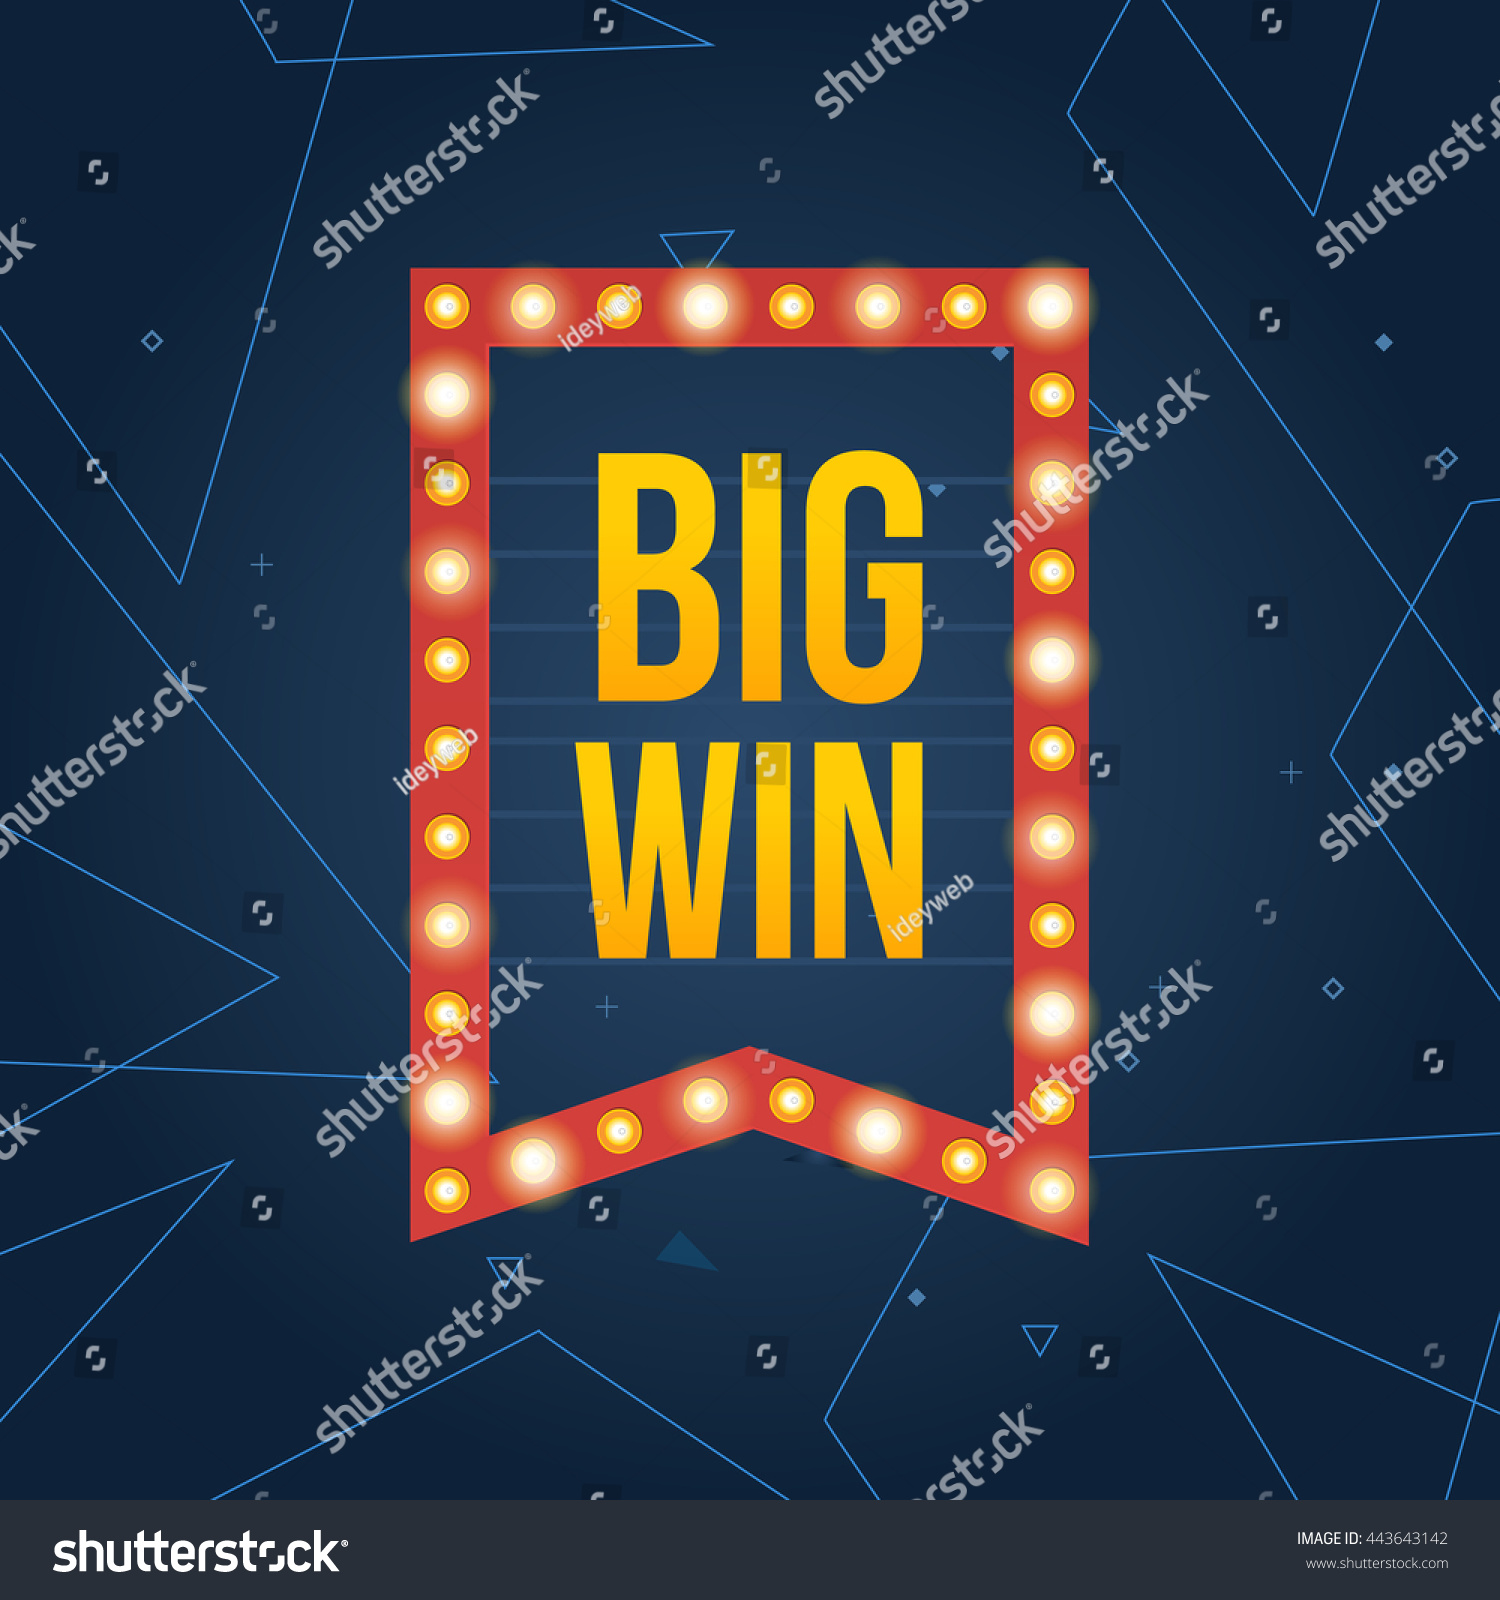 Design large banner in illustrator - Big Win Sign With Lamp Background For Online Casino Poker Roulette Slot Machines